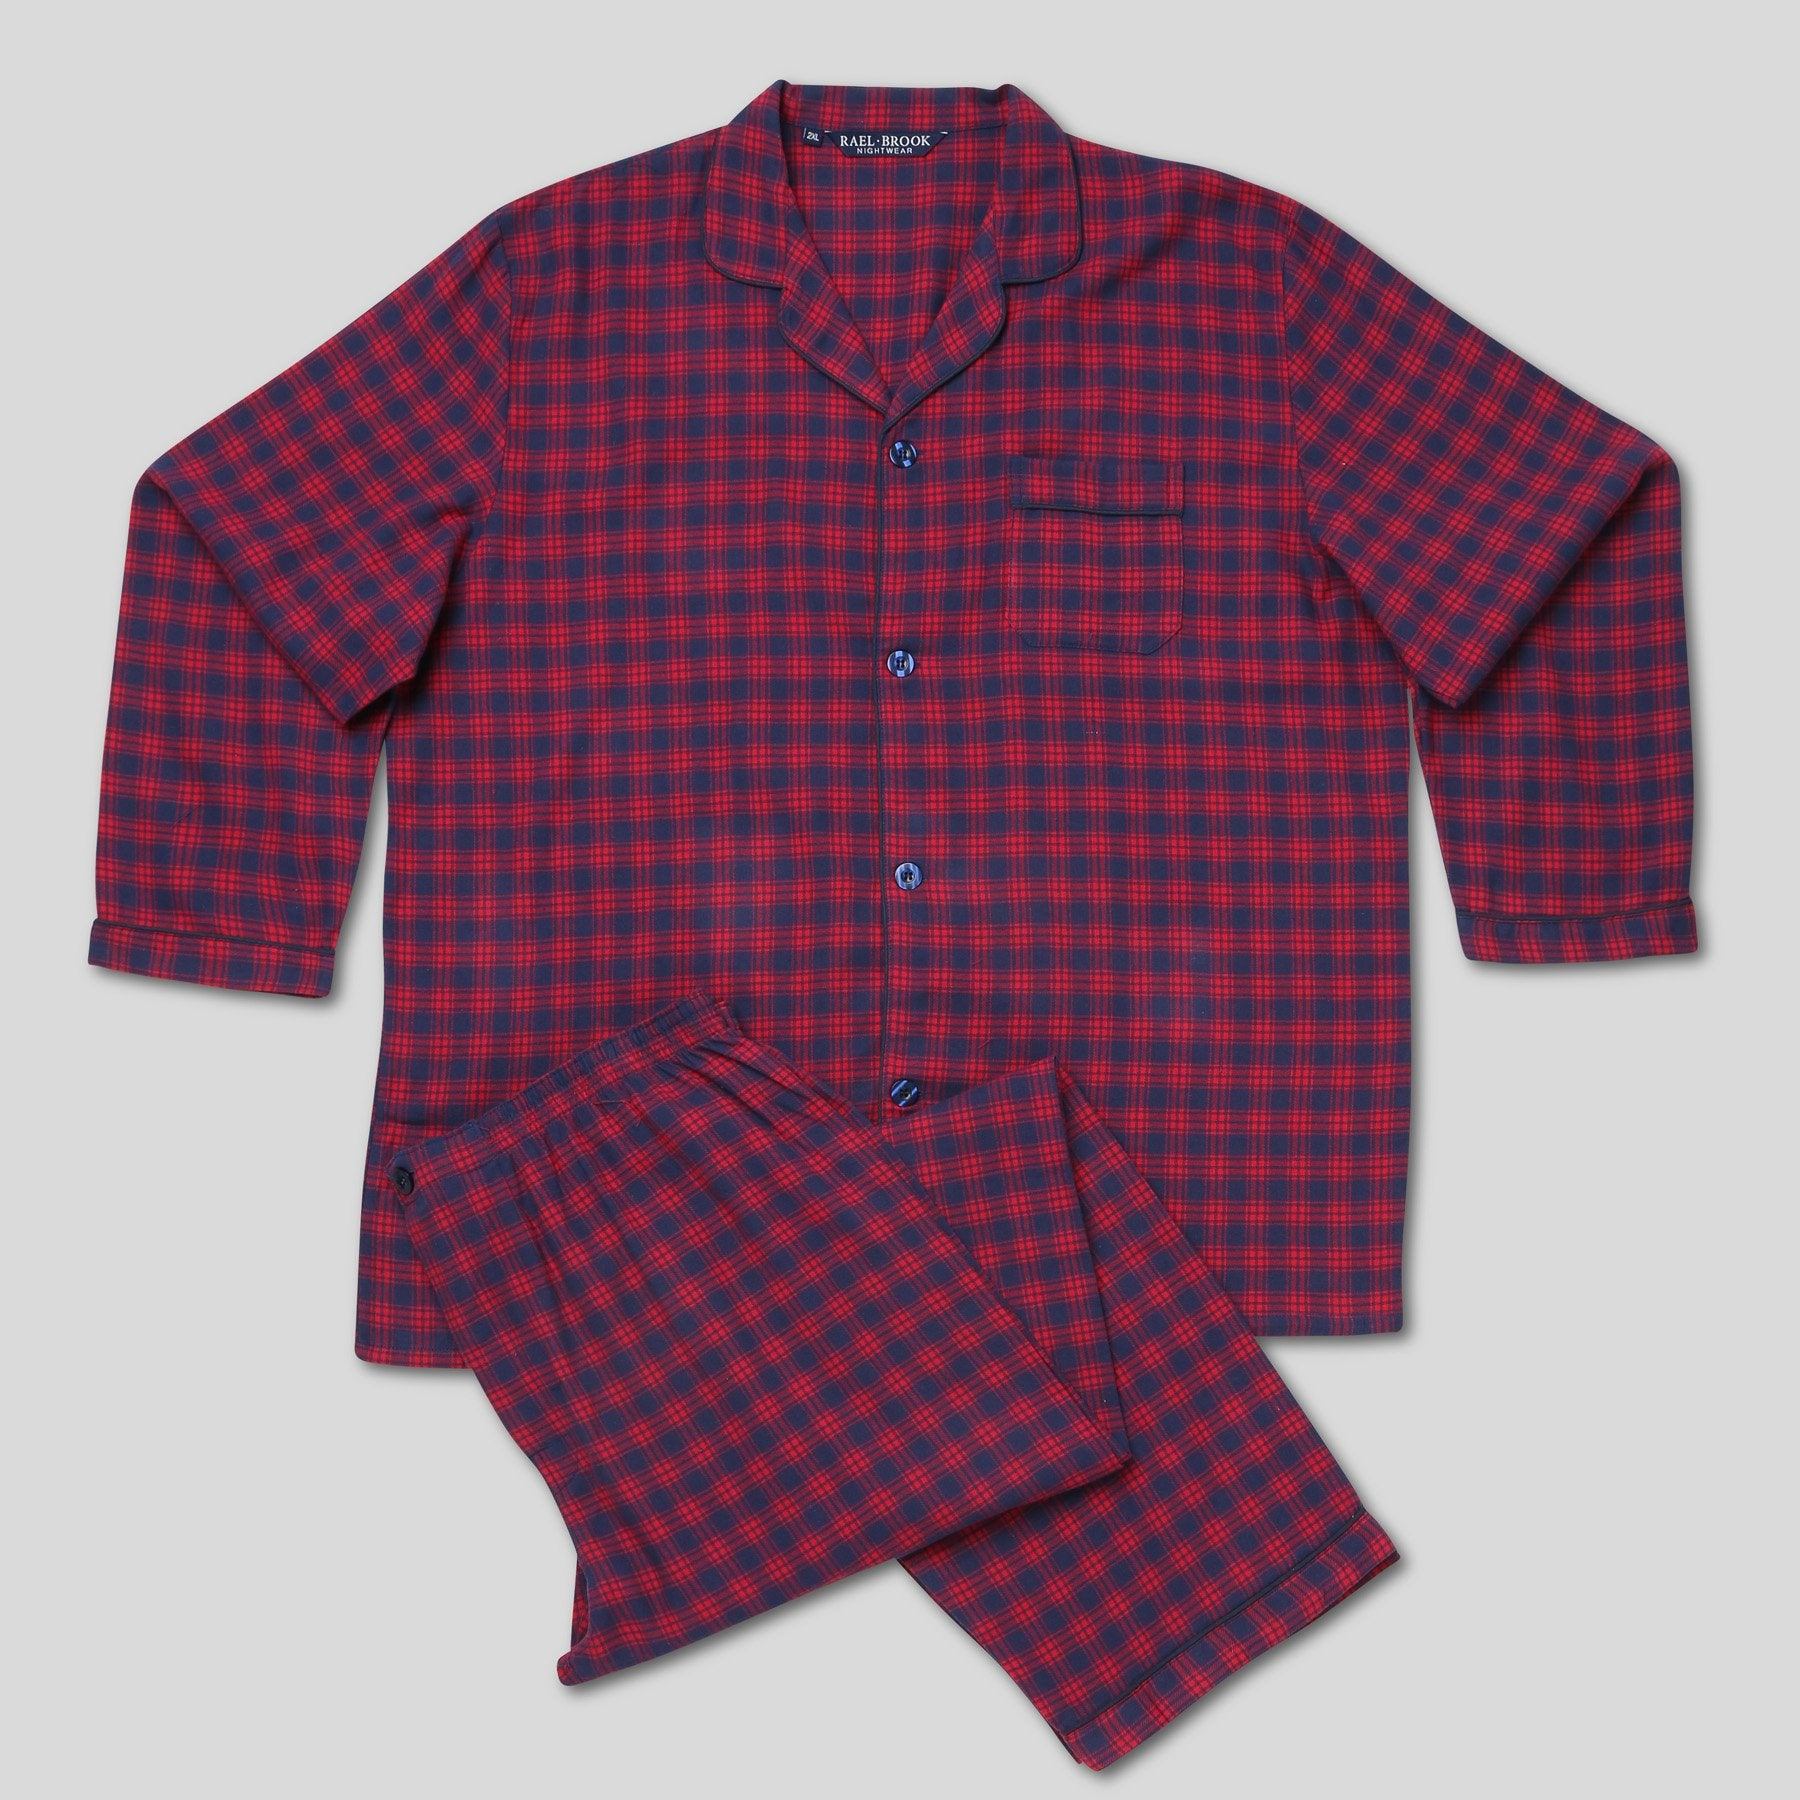 Rael Brook Standard Fit Red Check Brushed Cotton Pyjama Set